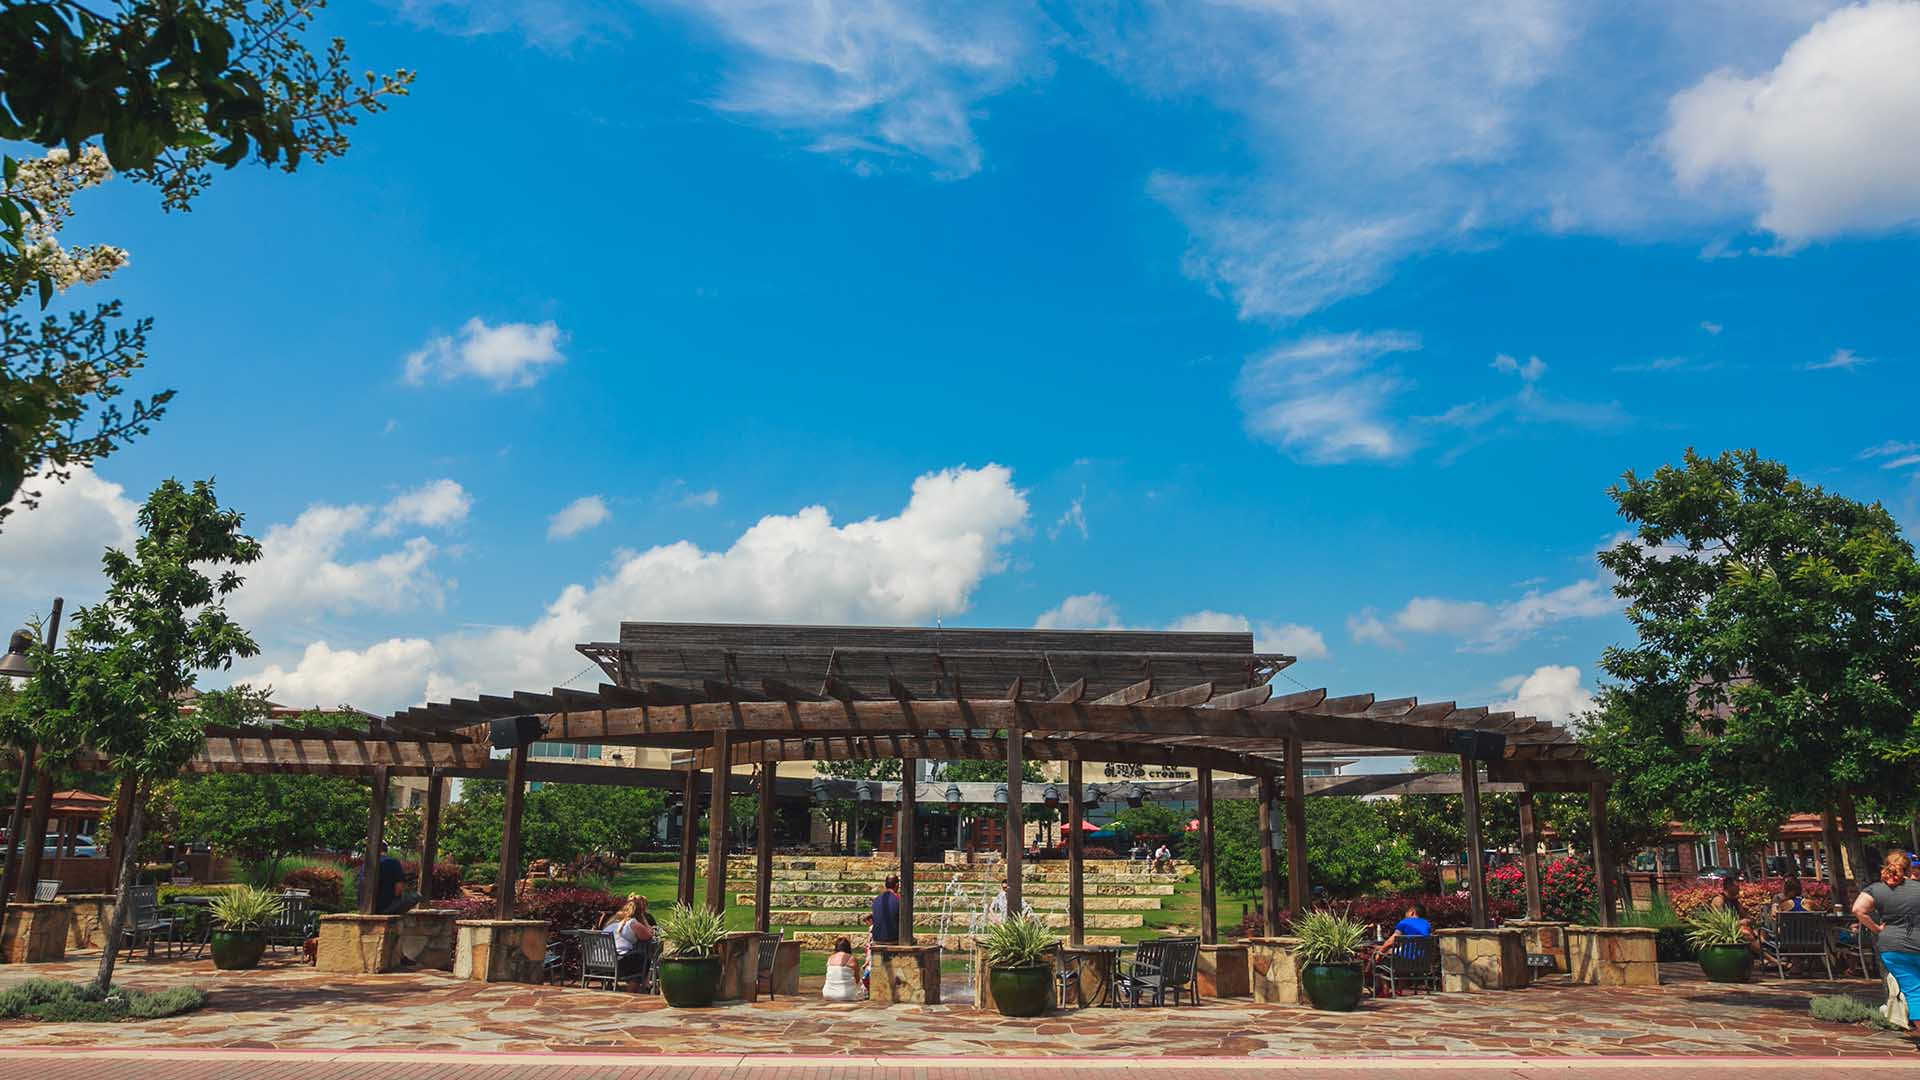 Image of Hill Country Galleria Splash Pad